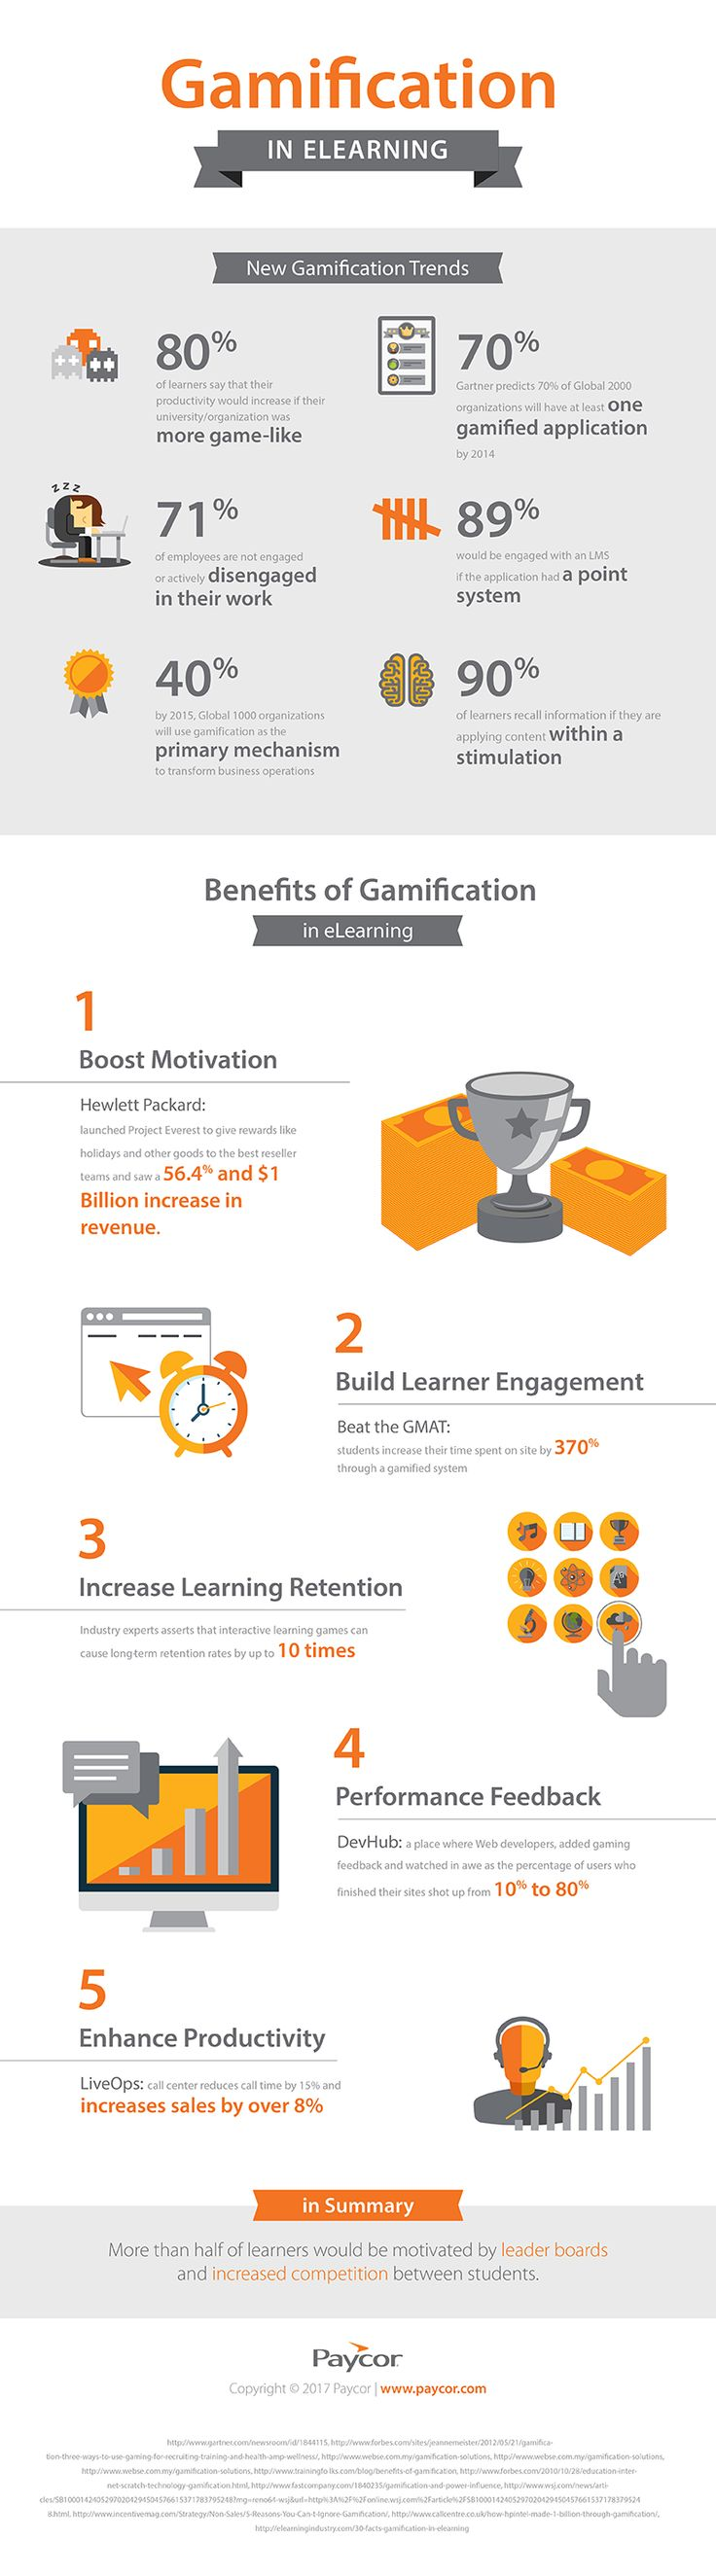 Gamification Trends in eLearning Infographic - https://elearninginfographics.com/gamification-trends-elearning-infographic/